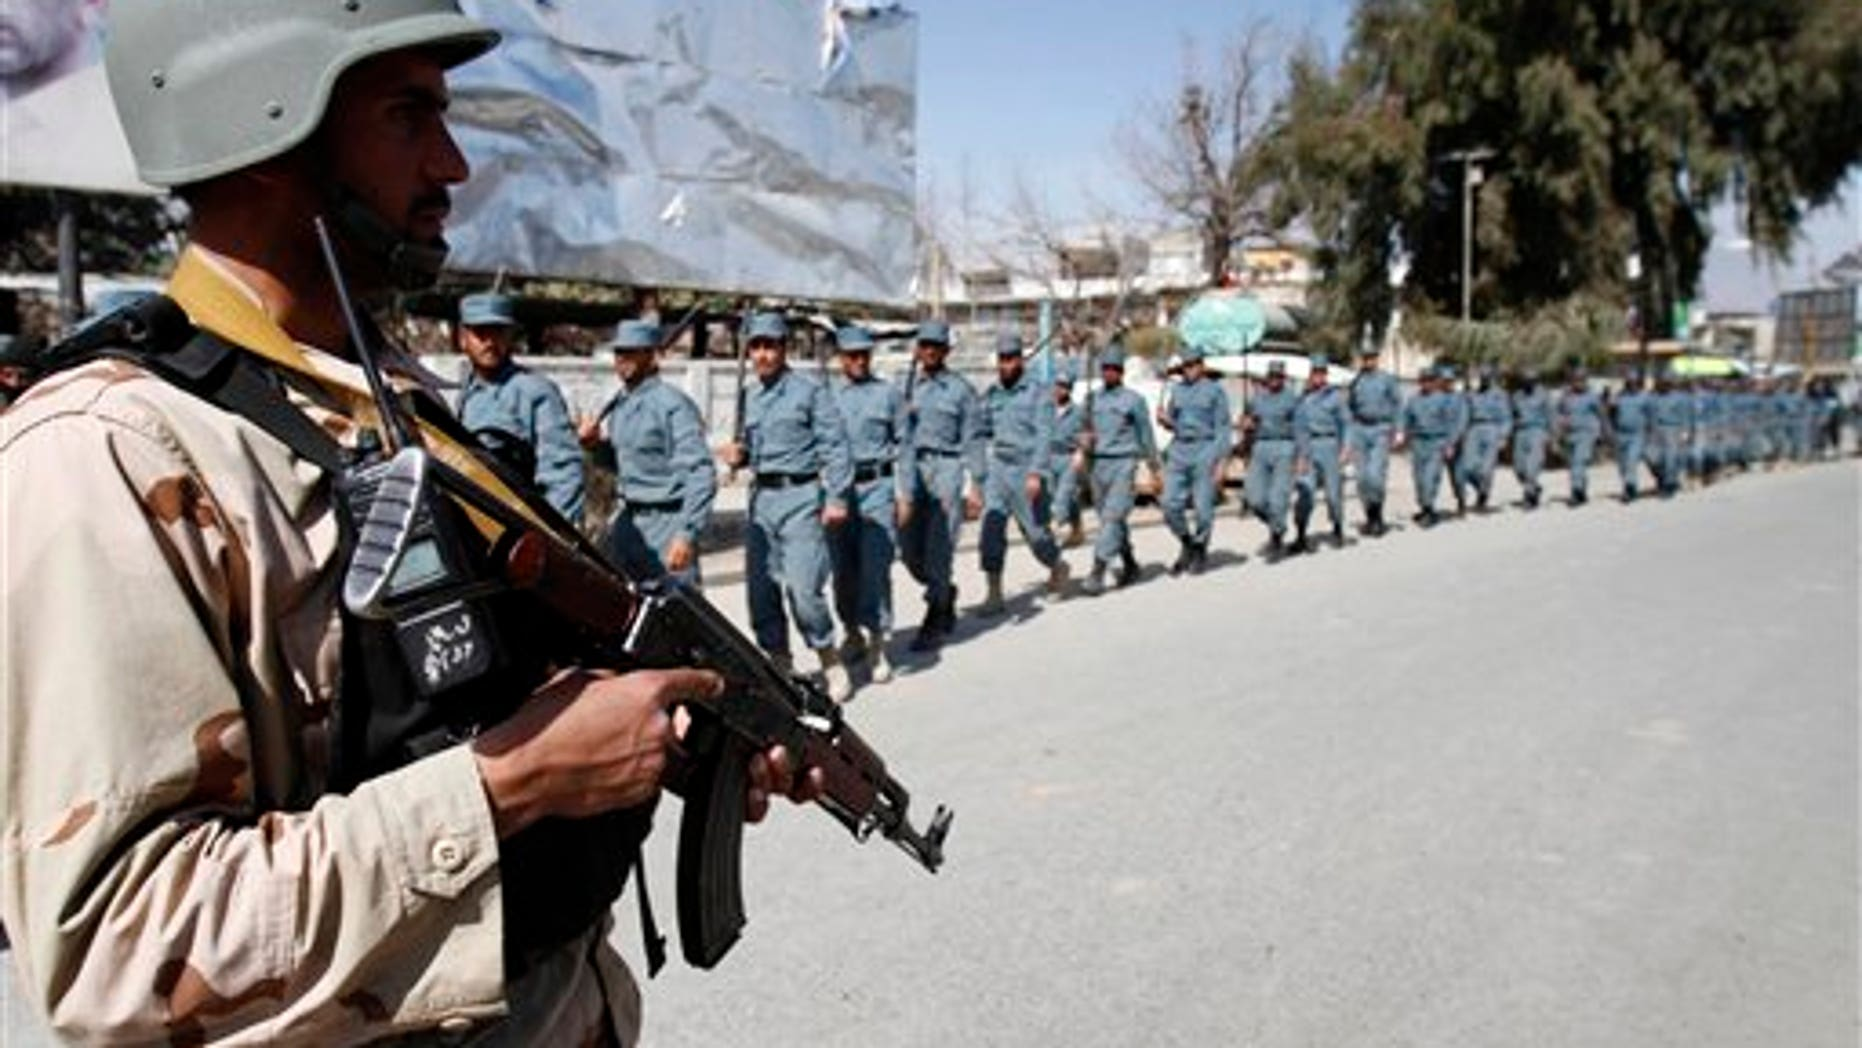 Feb. 25, 2012: Afghan policemen march towards an anti-U.S. demonstration in Mehterlam, Laghman province east of Kabul, Afghanistan.